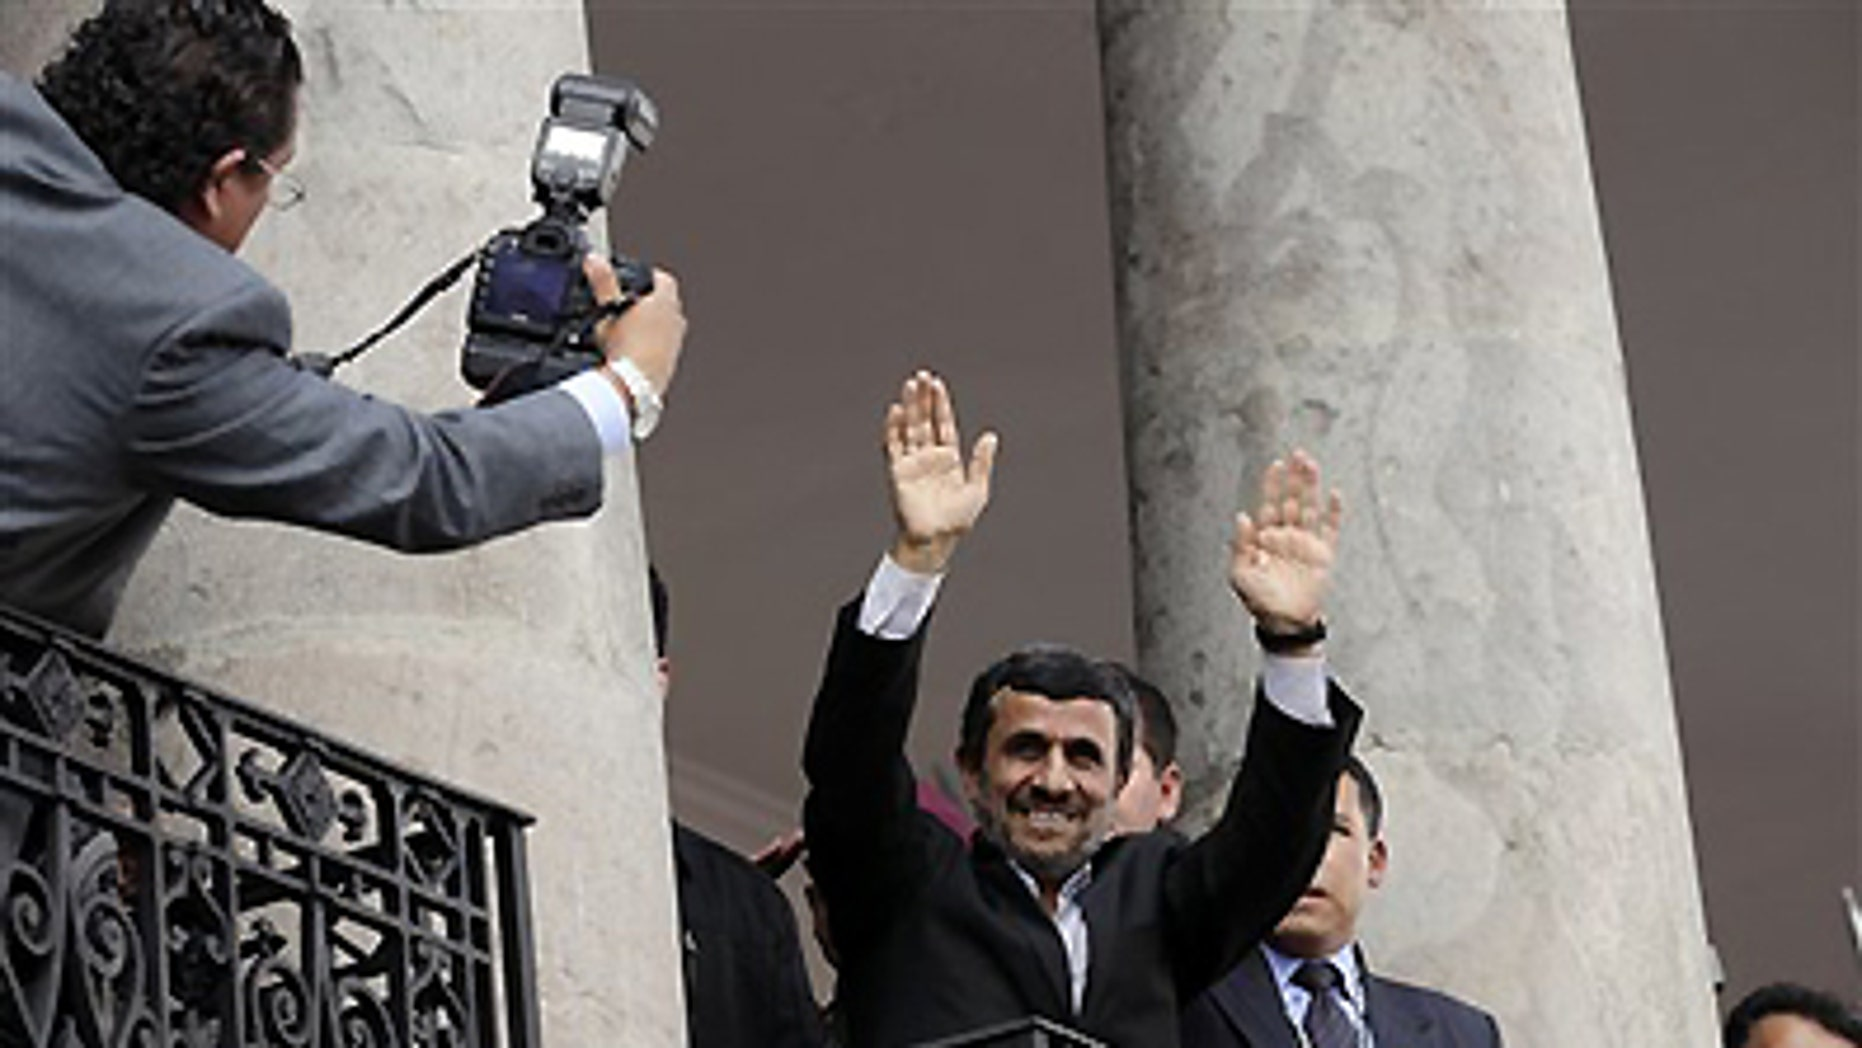 Jan. 12, 2012: Iran's President Mahmoud Ahmadinejad greets people from a balcony at the government palace in Quito, Ecuador.